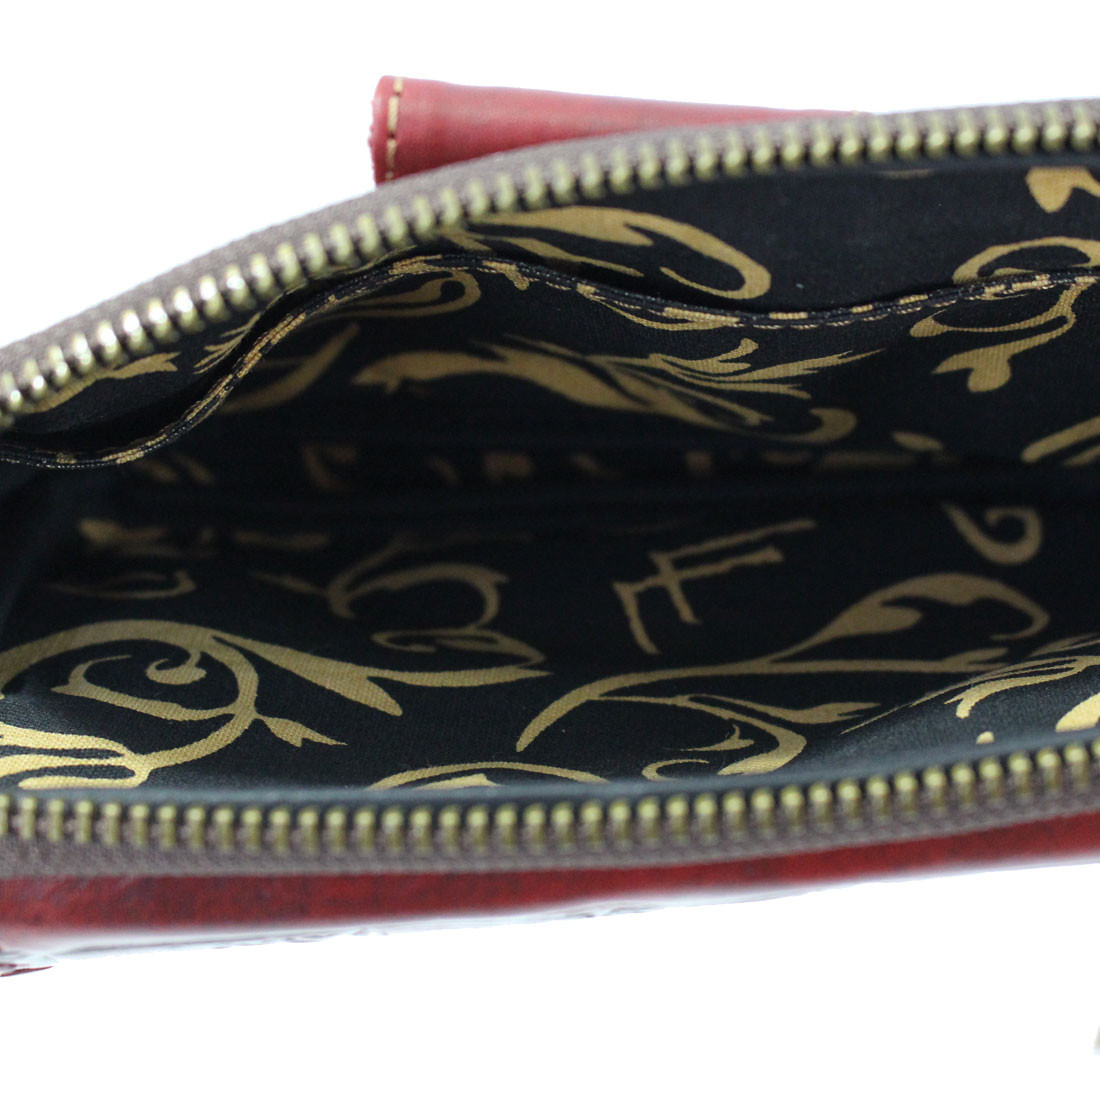 Inside fabric of red leather wallet.